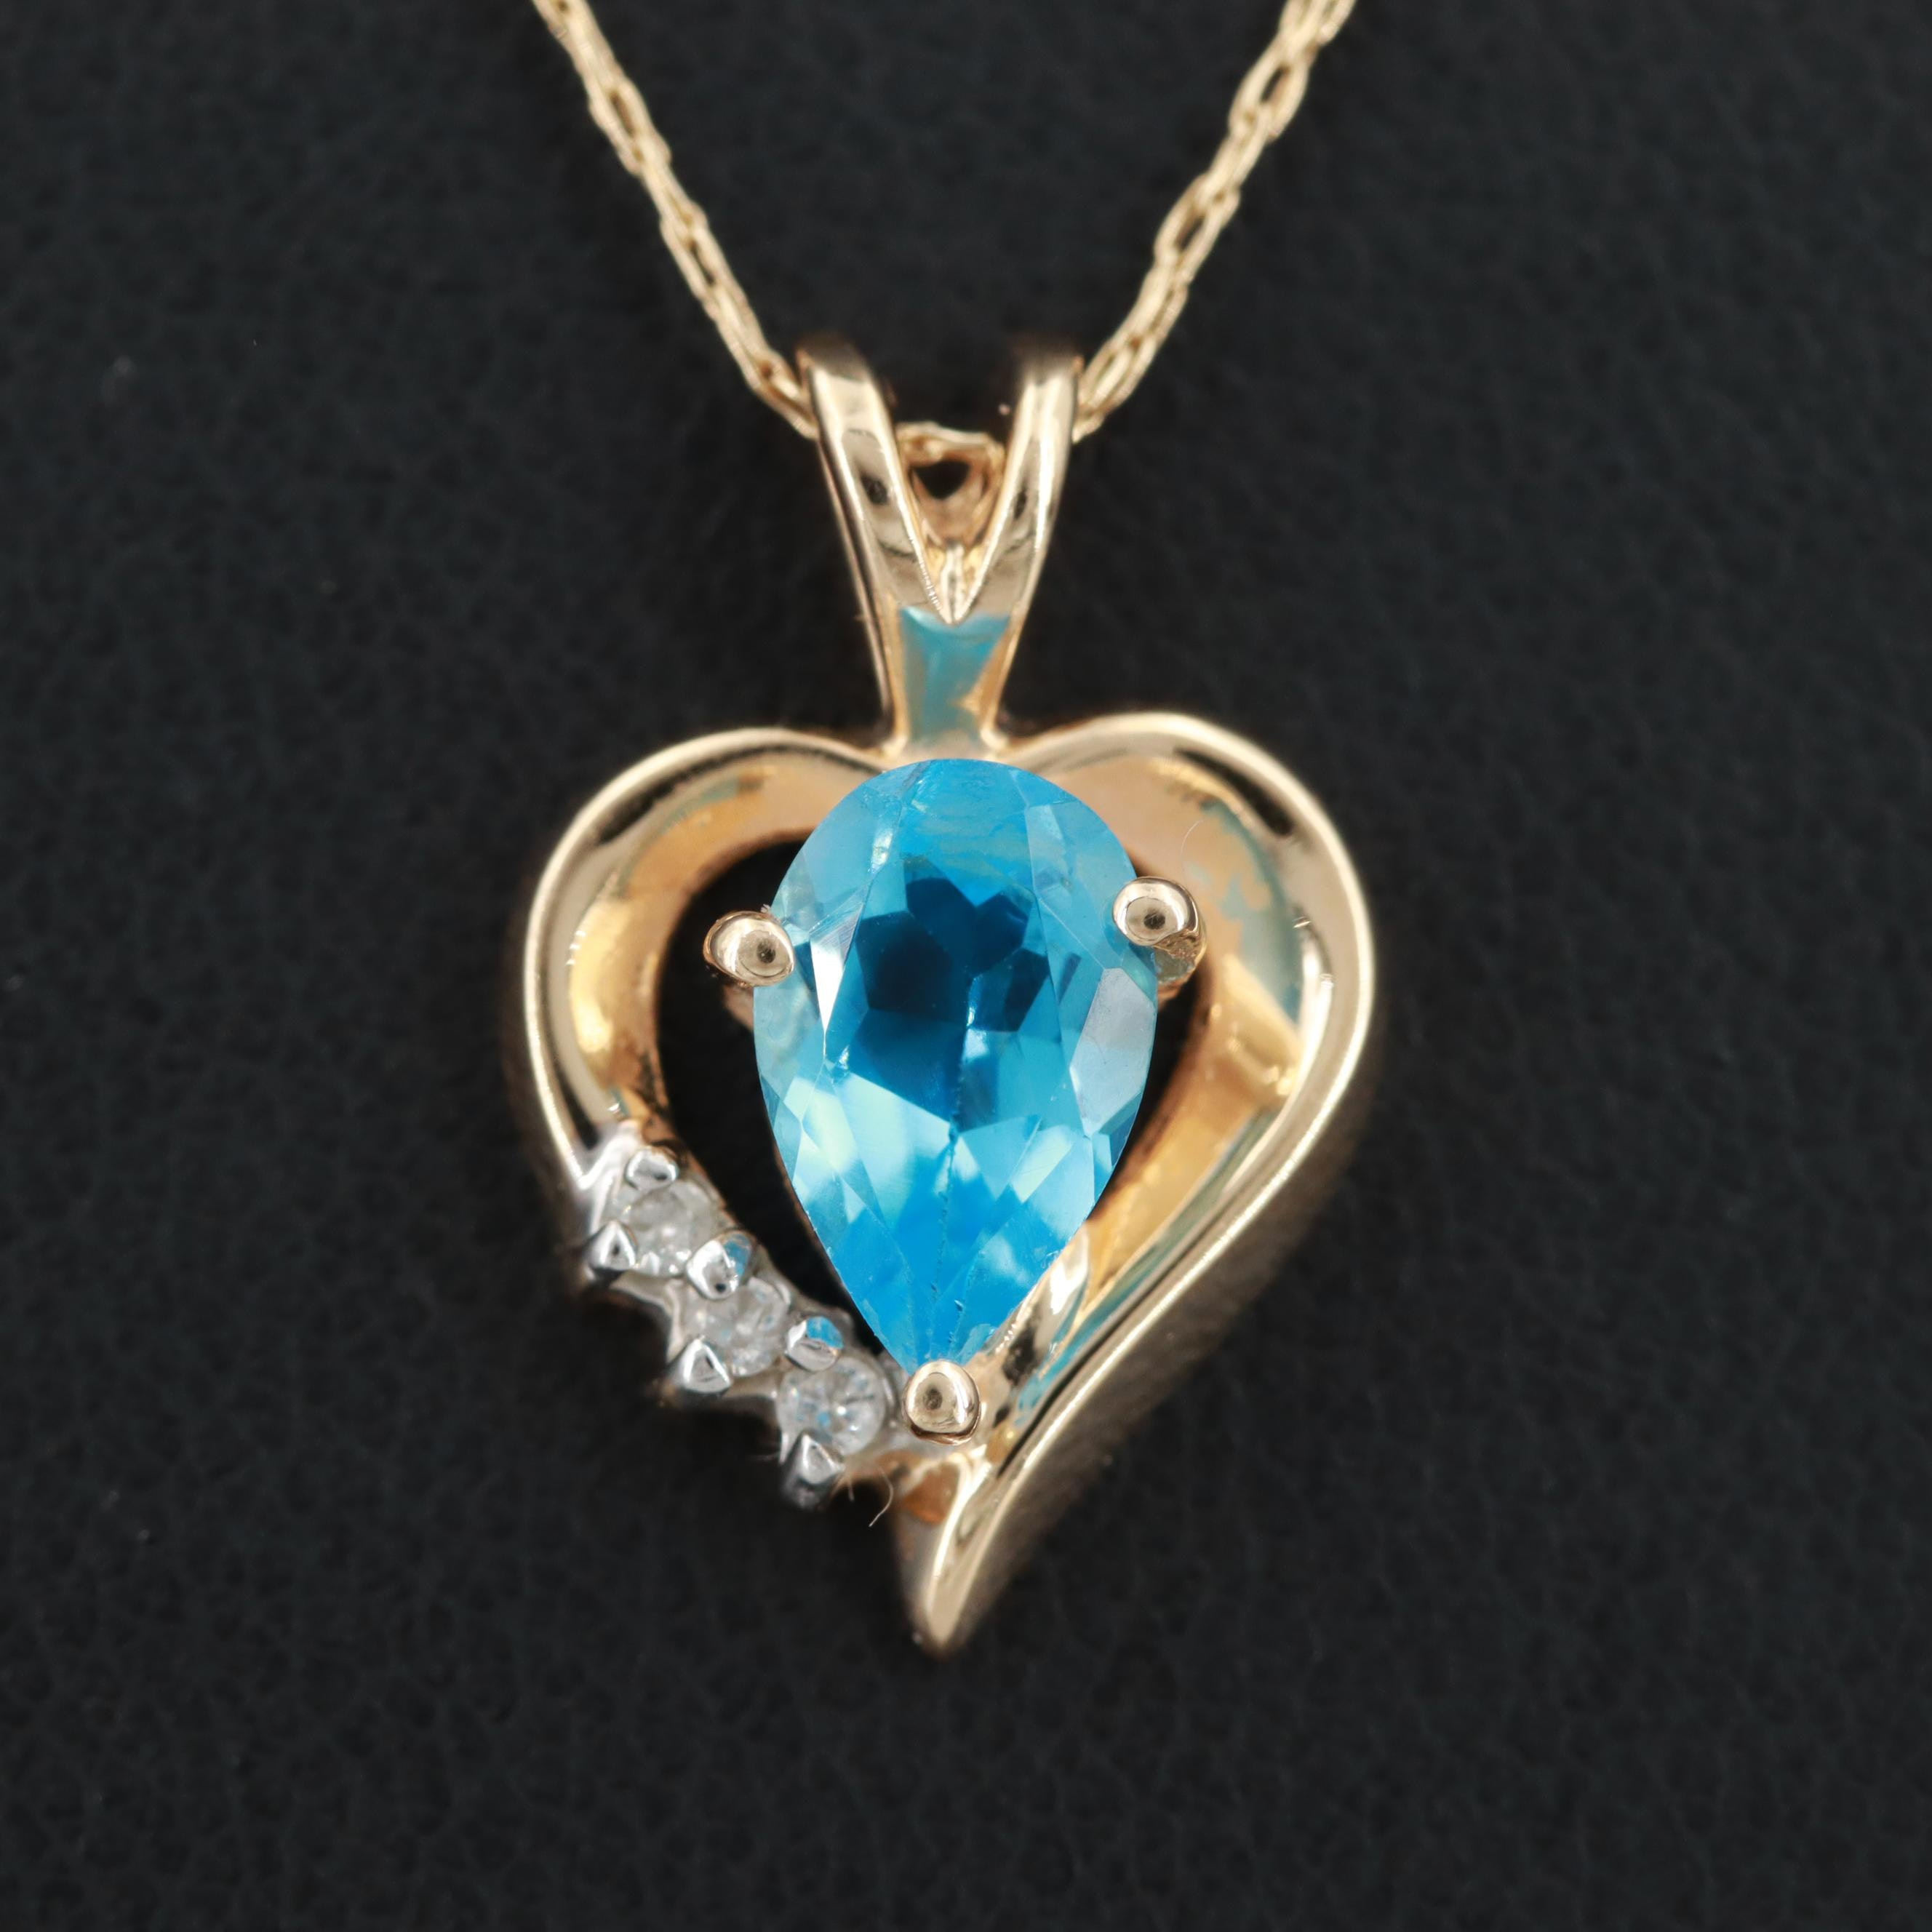 14K Yellow Gold Topaz and Diamond Heart Pendant Necklace